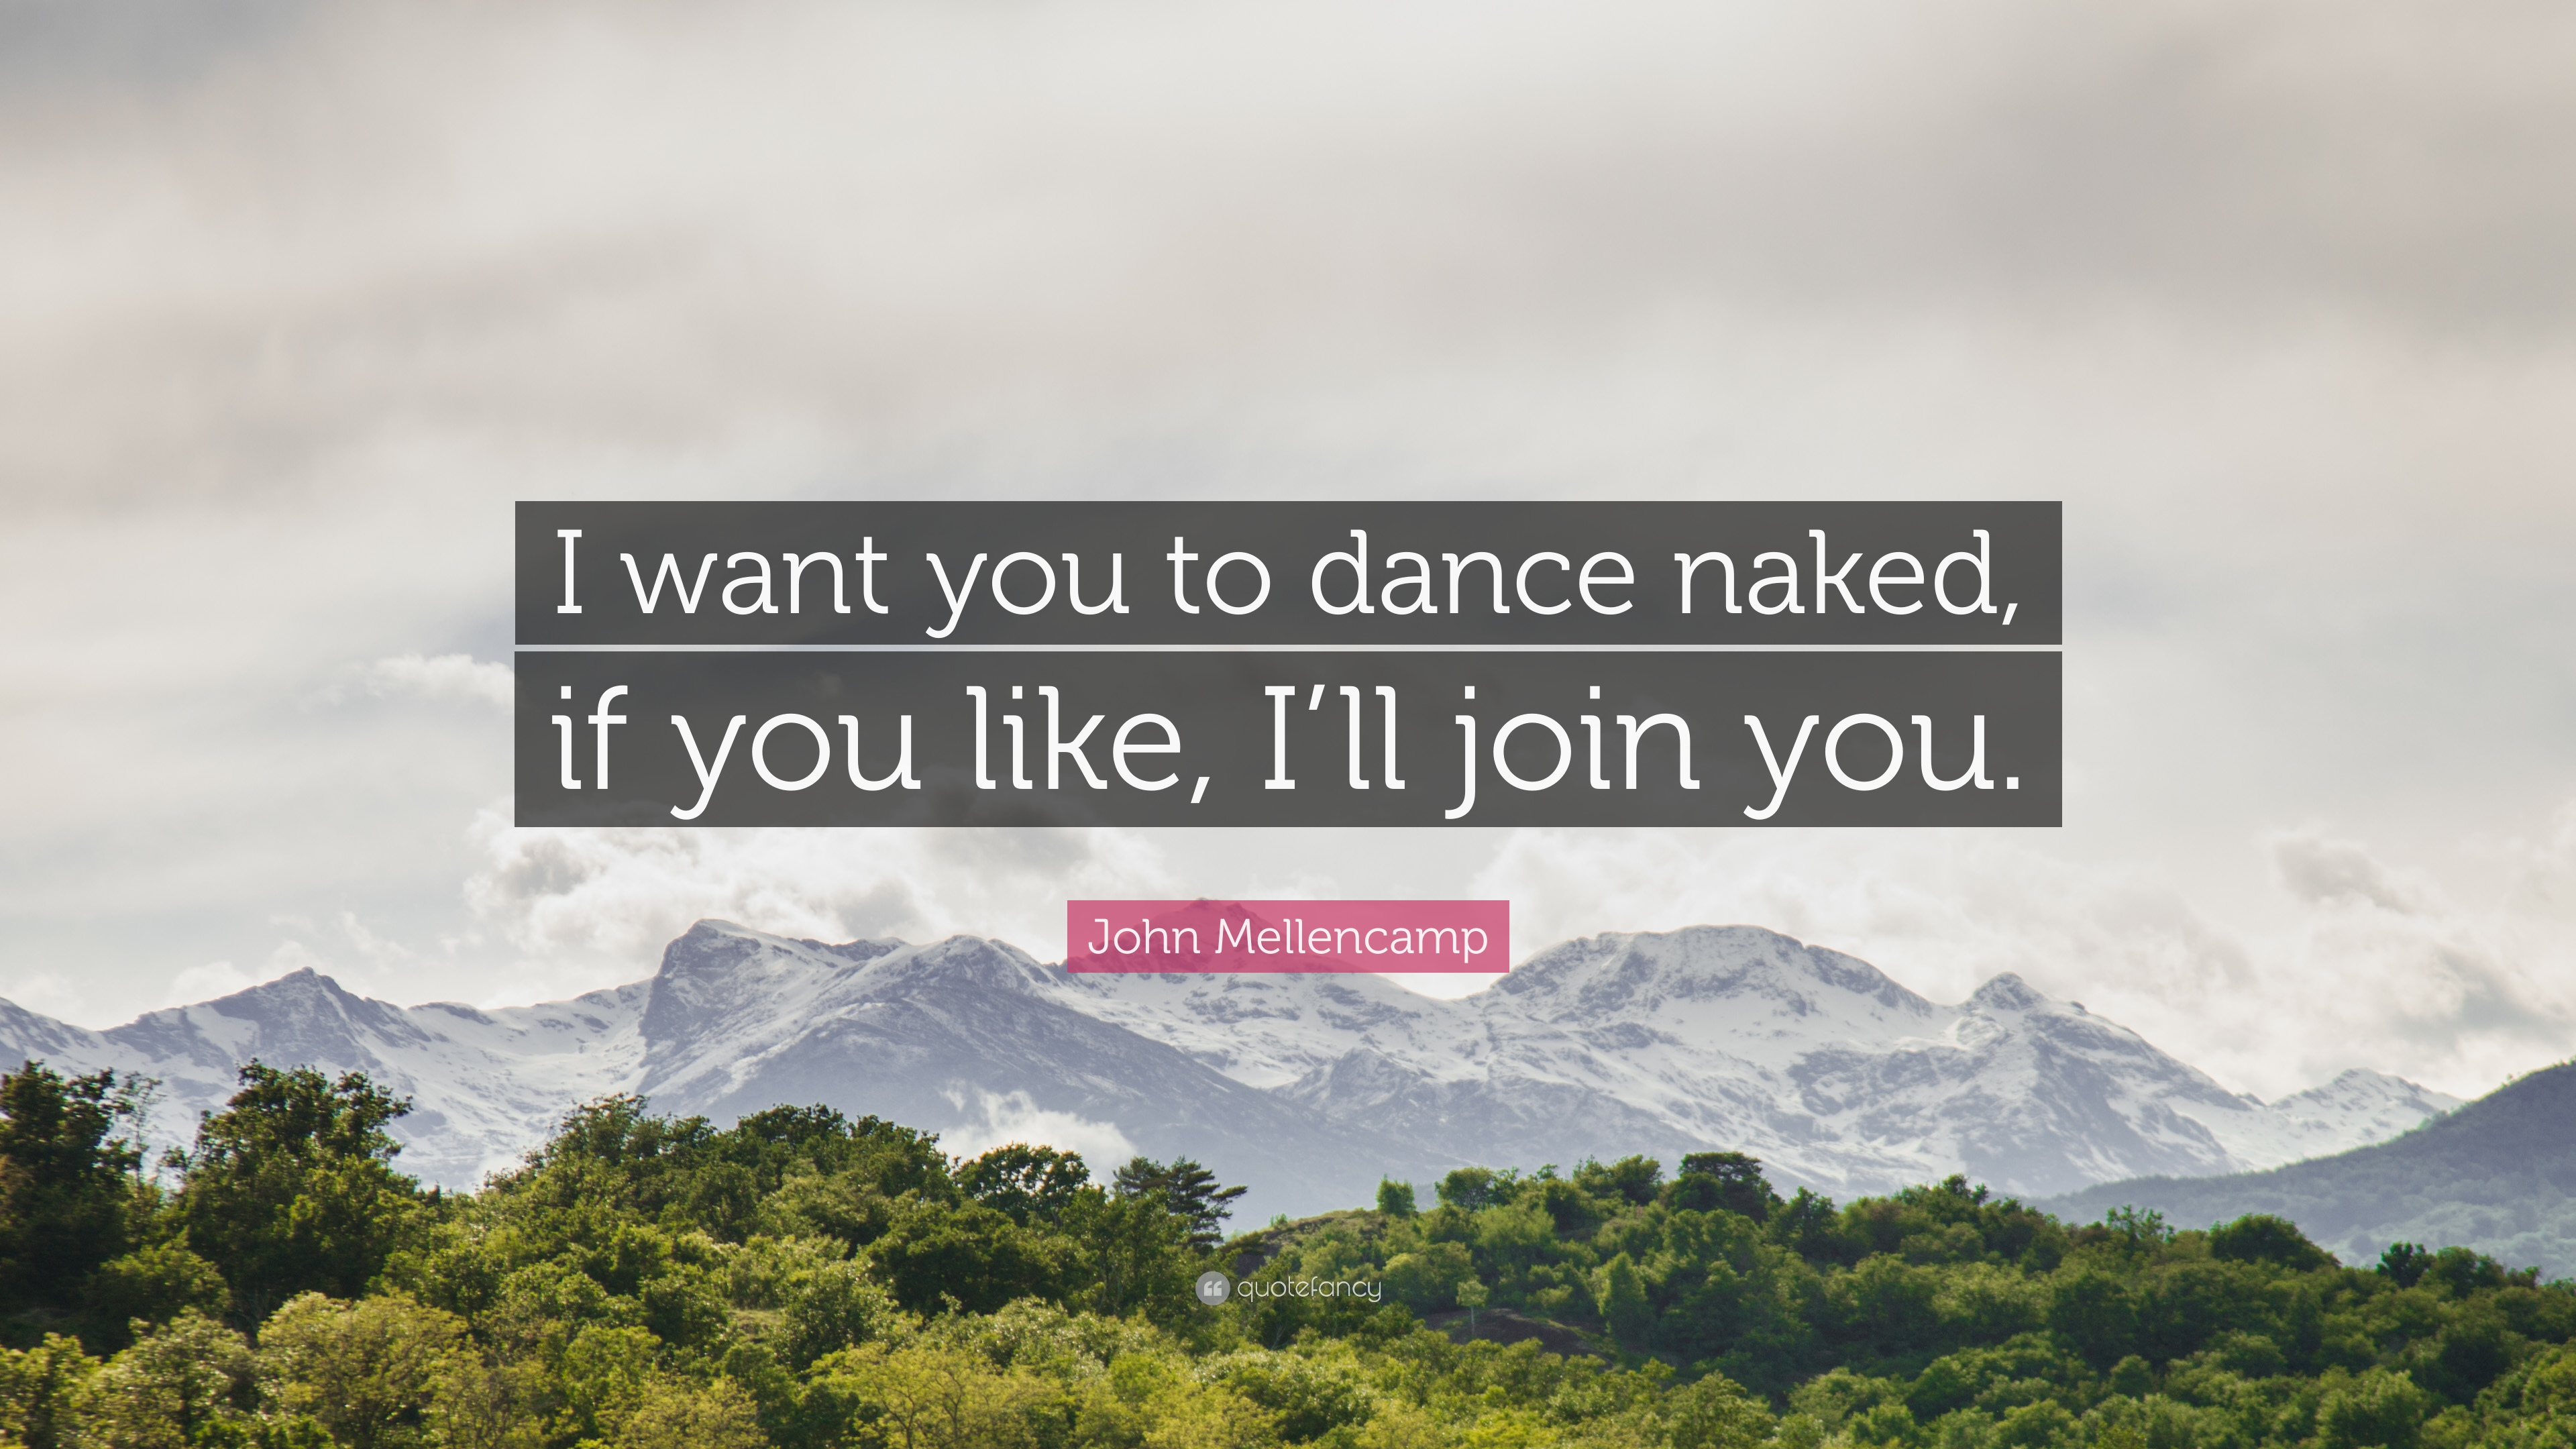 I want you to dance naked